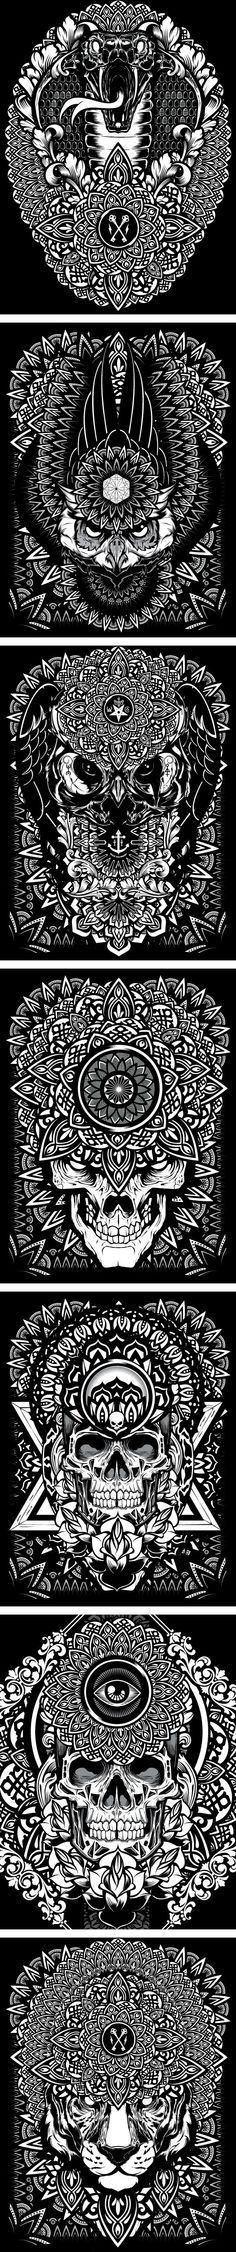 Mandala Exploration by Joshua M. Smith, via Behance